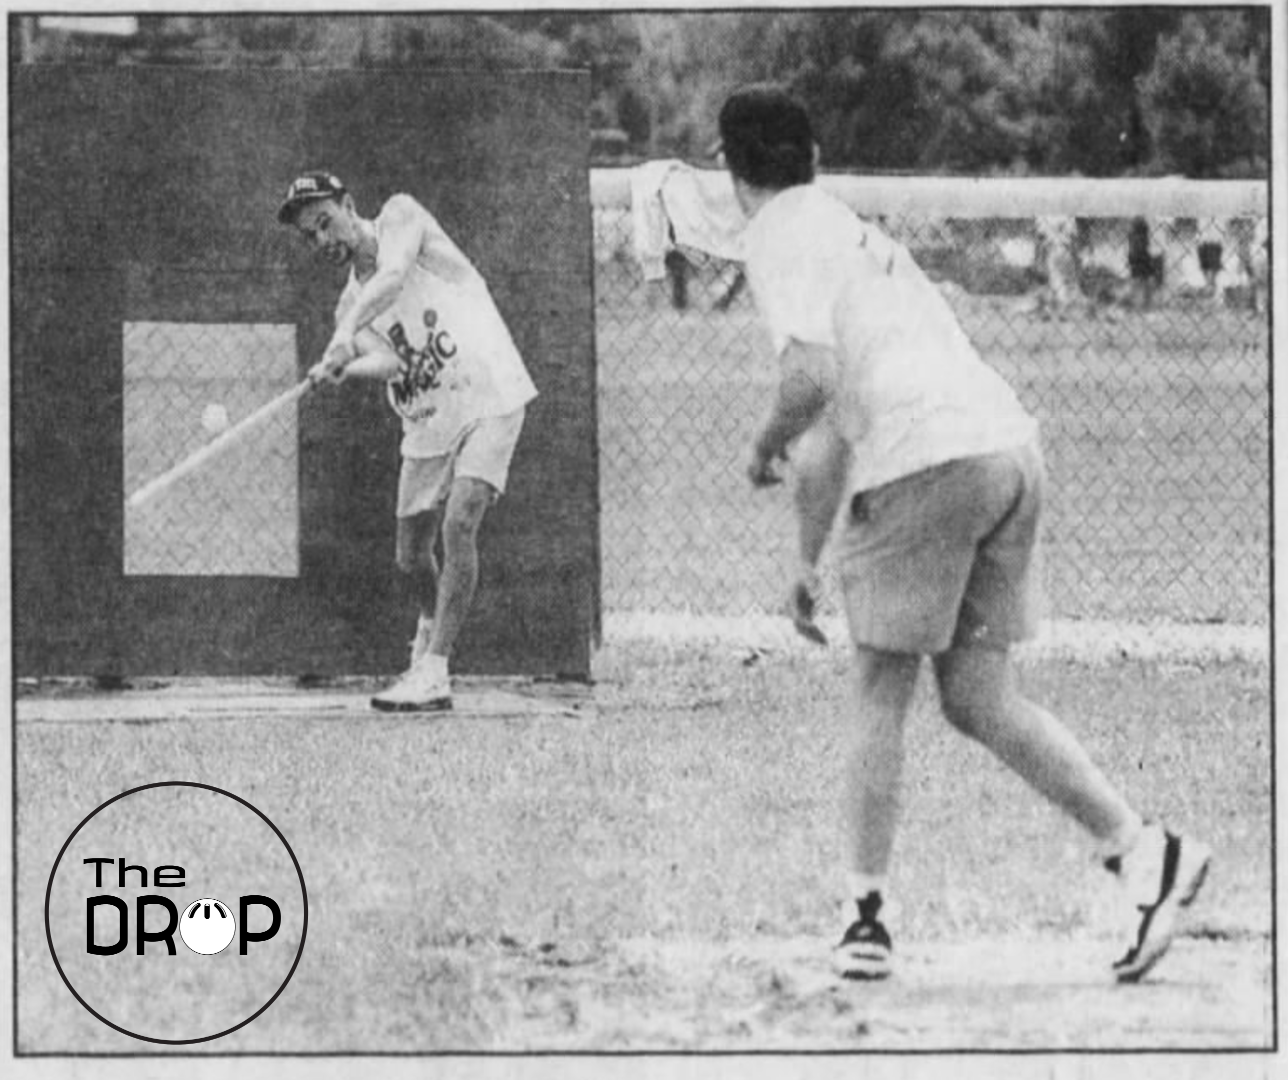 Kevin Priessman is credited with popularizing – if not outright inventing – the Hole strike zone. Here it is in 1994 during league play in Cincinnati.